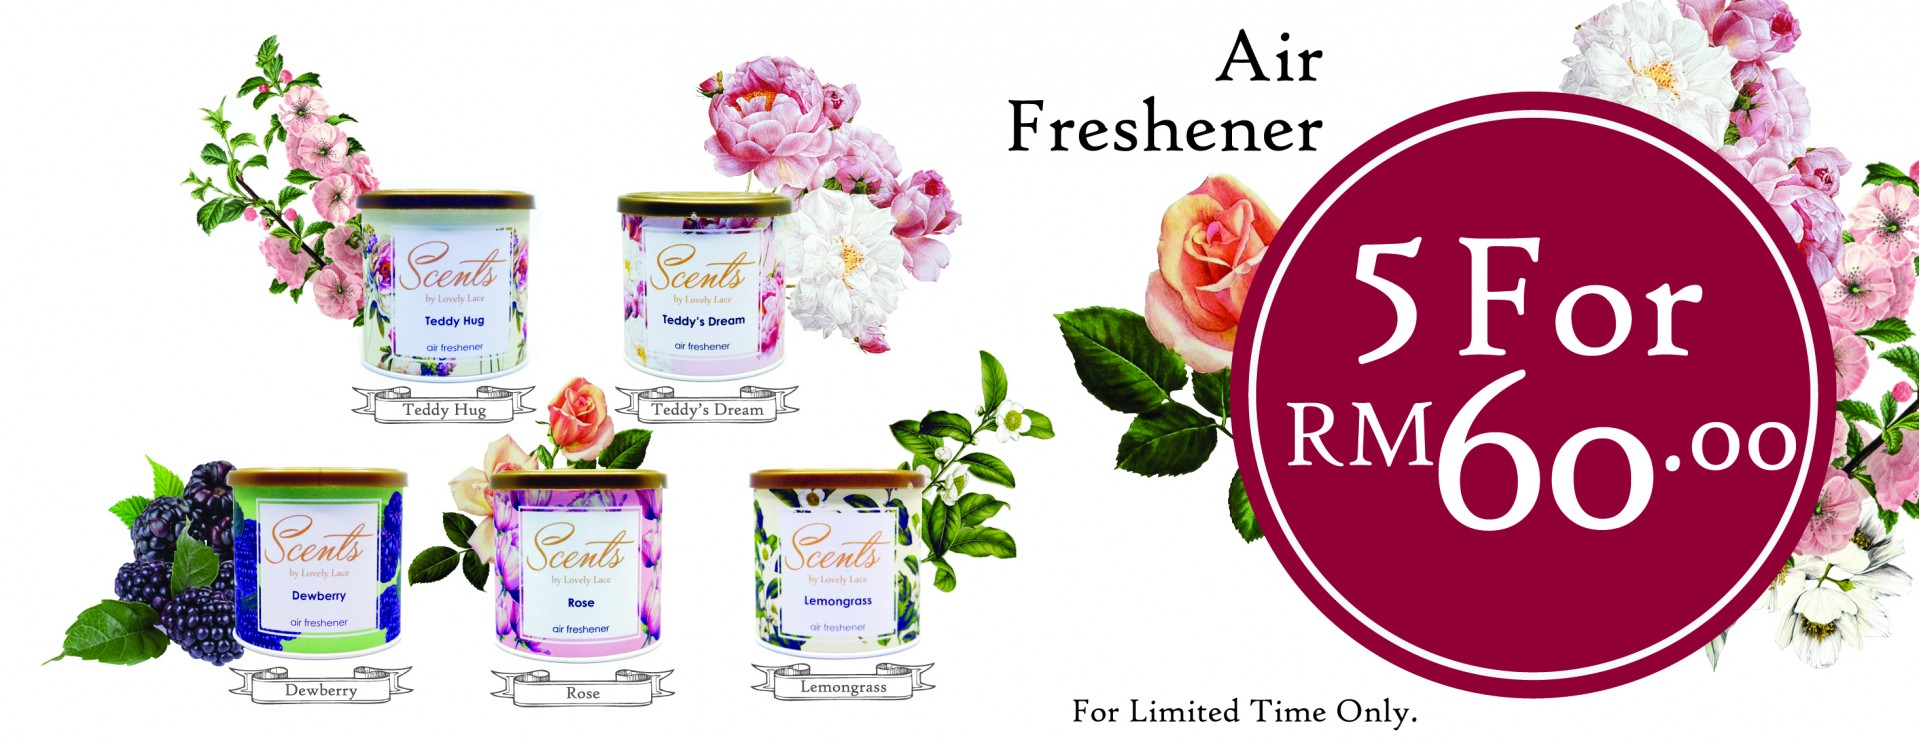 Scents by Lovely Lace